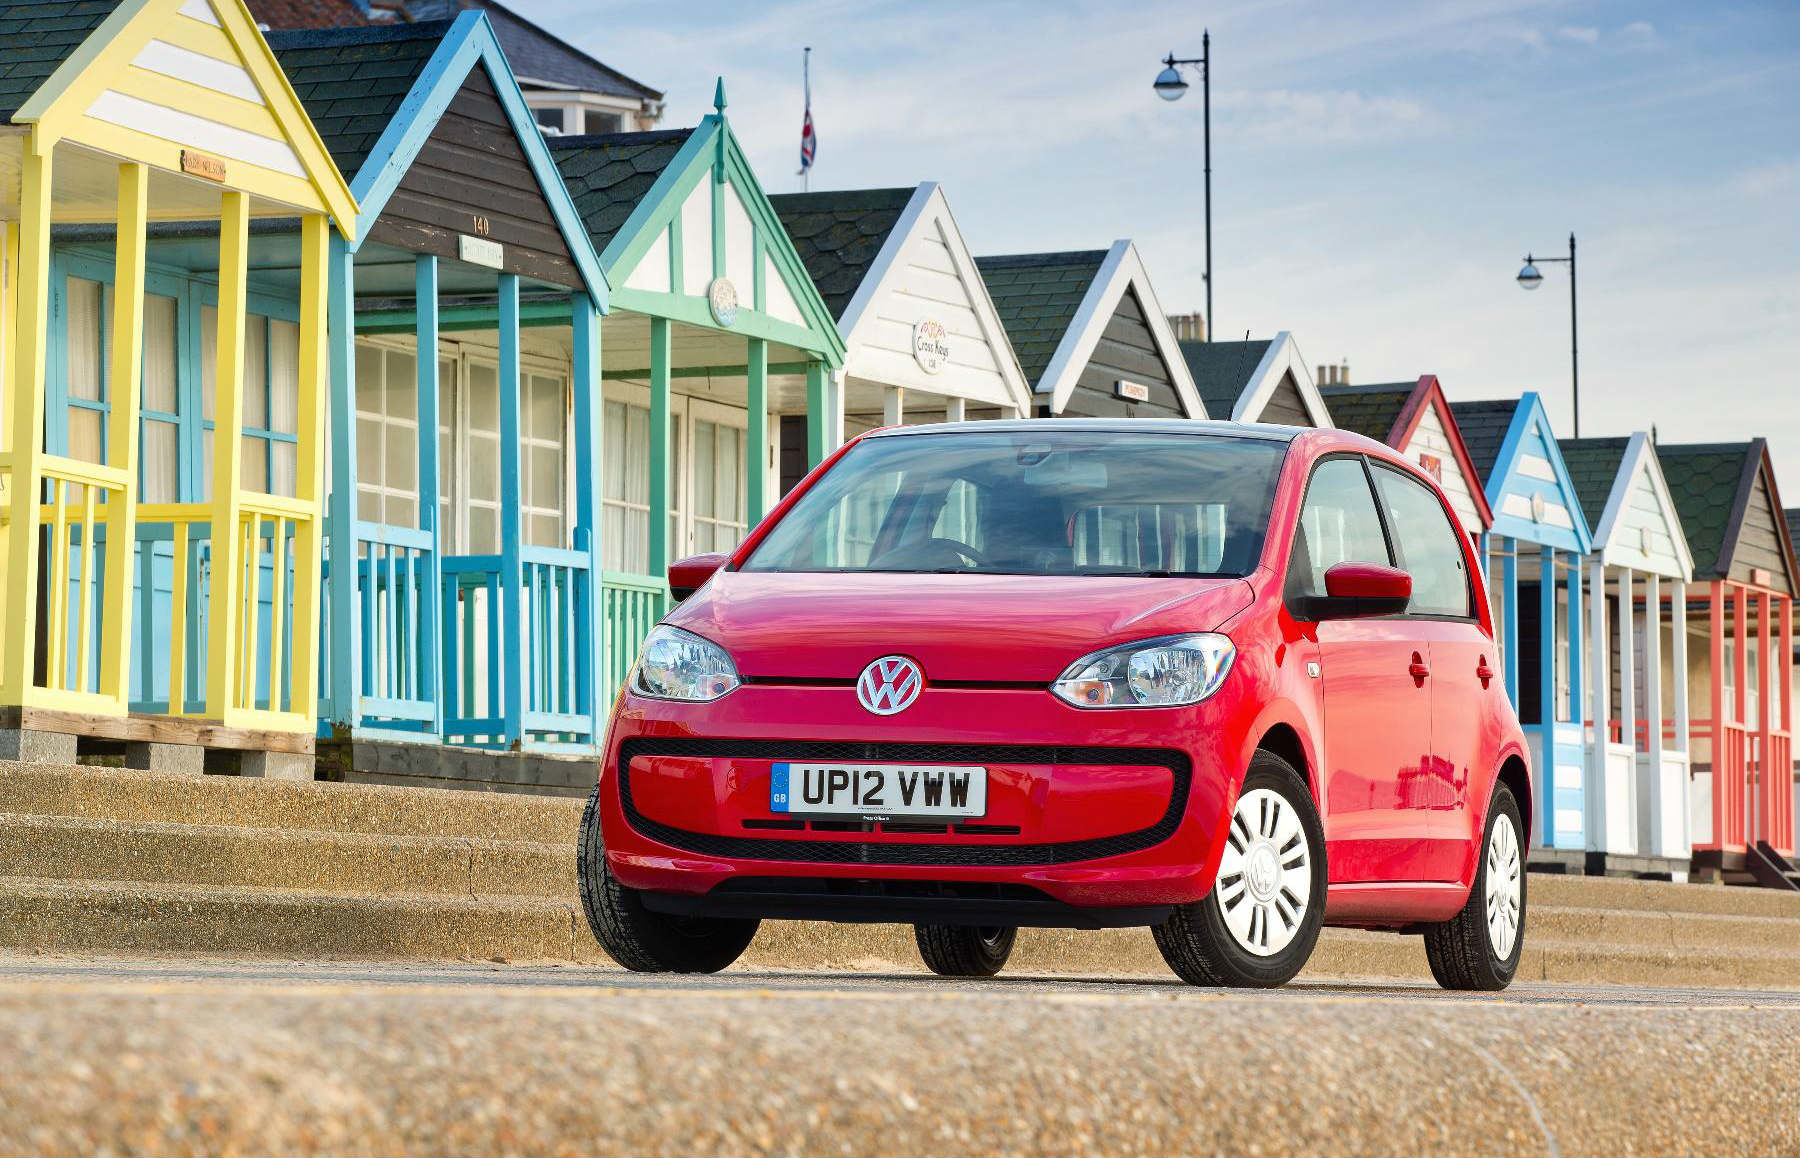 image of a volkswagen up car exterior